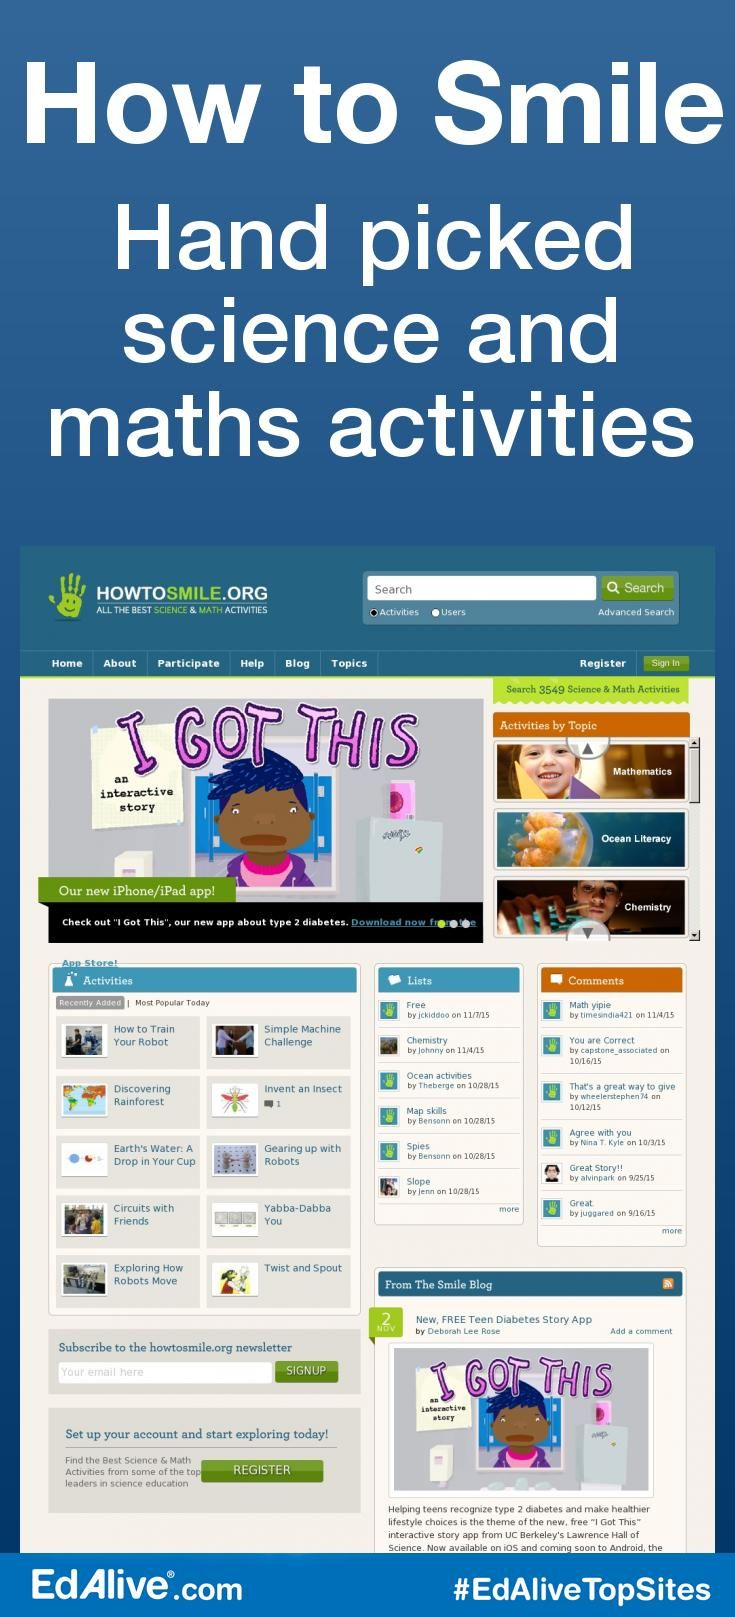 Hand picked science and maths activities | A free-access collection of 3,500 of the best hands-on science and math activities for all ages. Based at UC Berkeley's Lawrence Hall of the Science, SMILE makes STEM fun and educational, and draws activities from leading science centers, science and science education organizations, universities and national agencies. #Science #EdAliveTopSites